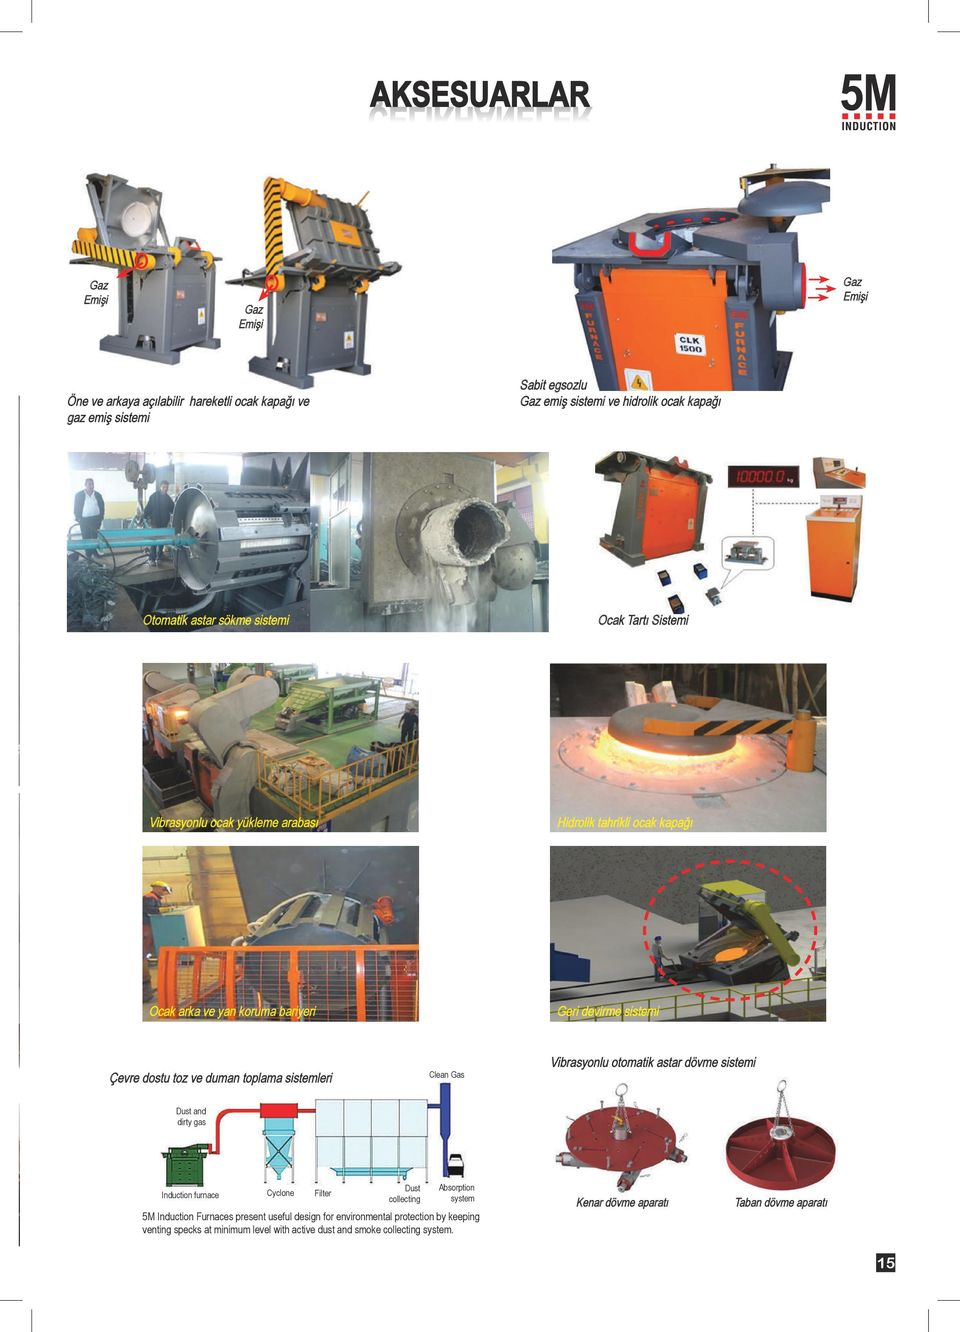 ve duman toplama sistemleri Clean Gas Vibrasyonlu otomatik astar dövme sistemi Dust and dirty gas Induction furnace Cyclone Filter Dust collecting Absorption system 5M Induction